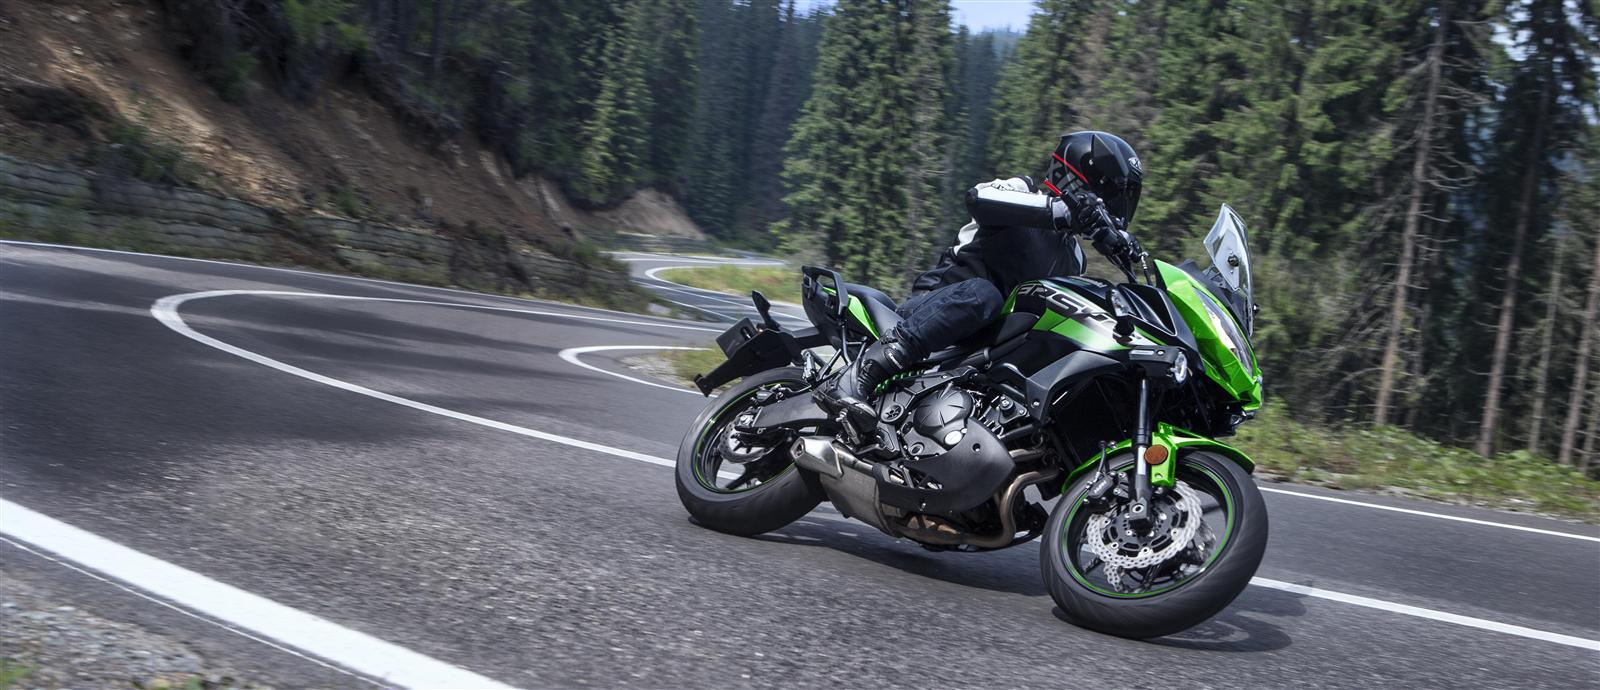 New Kawasaki Versys 650 Launched at Rs 6.50 Lakh